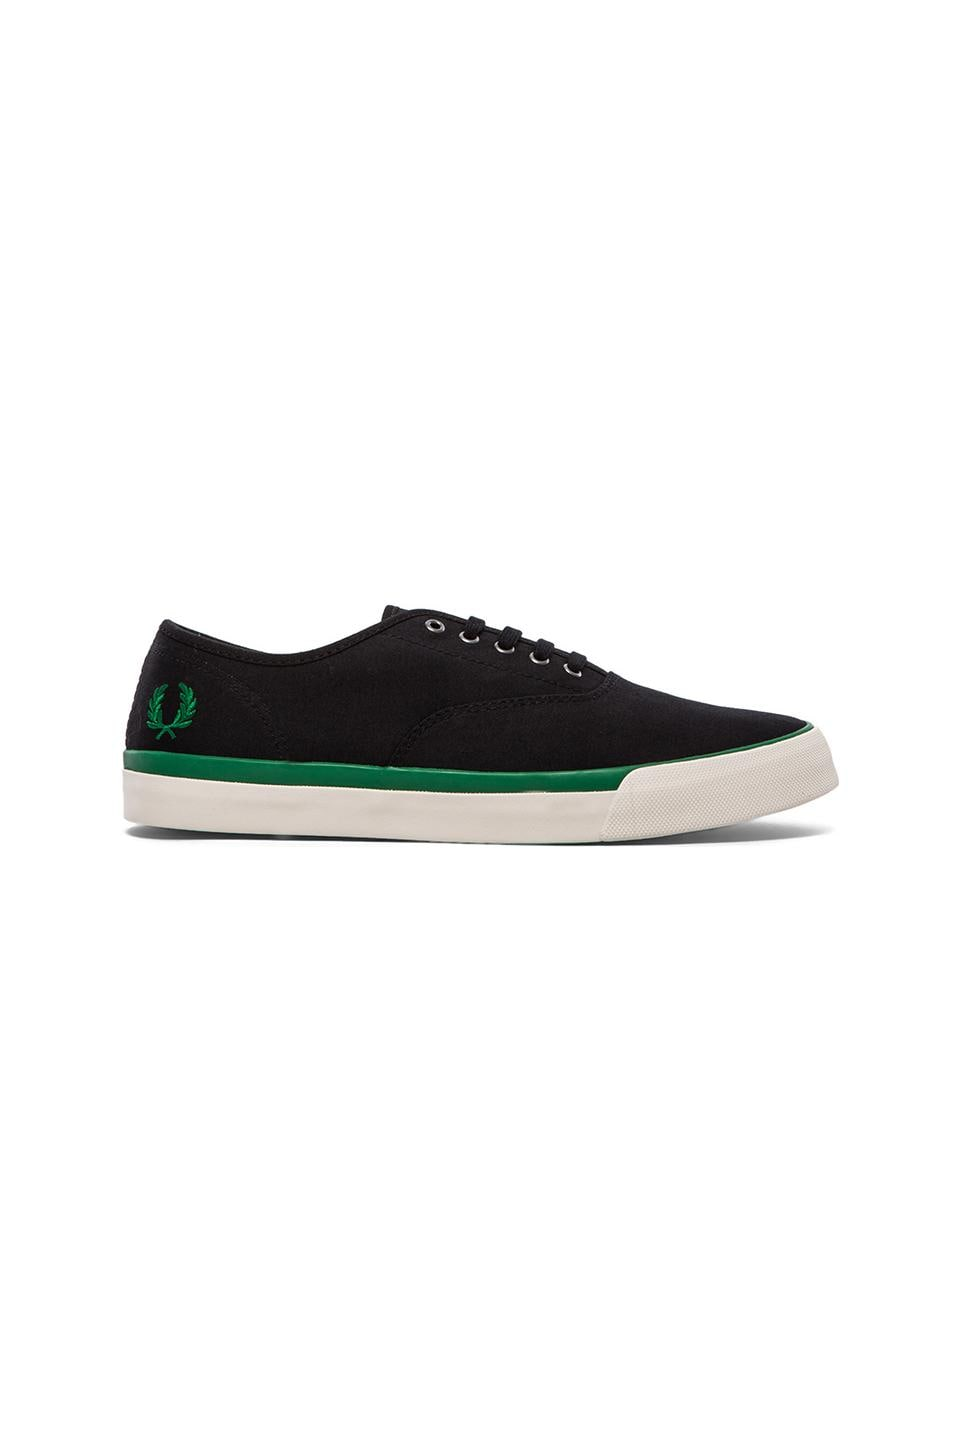 Fred Perry Clarence Twill Sneaker in Black & Privet